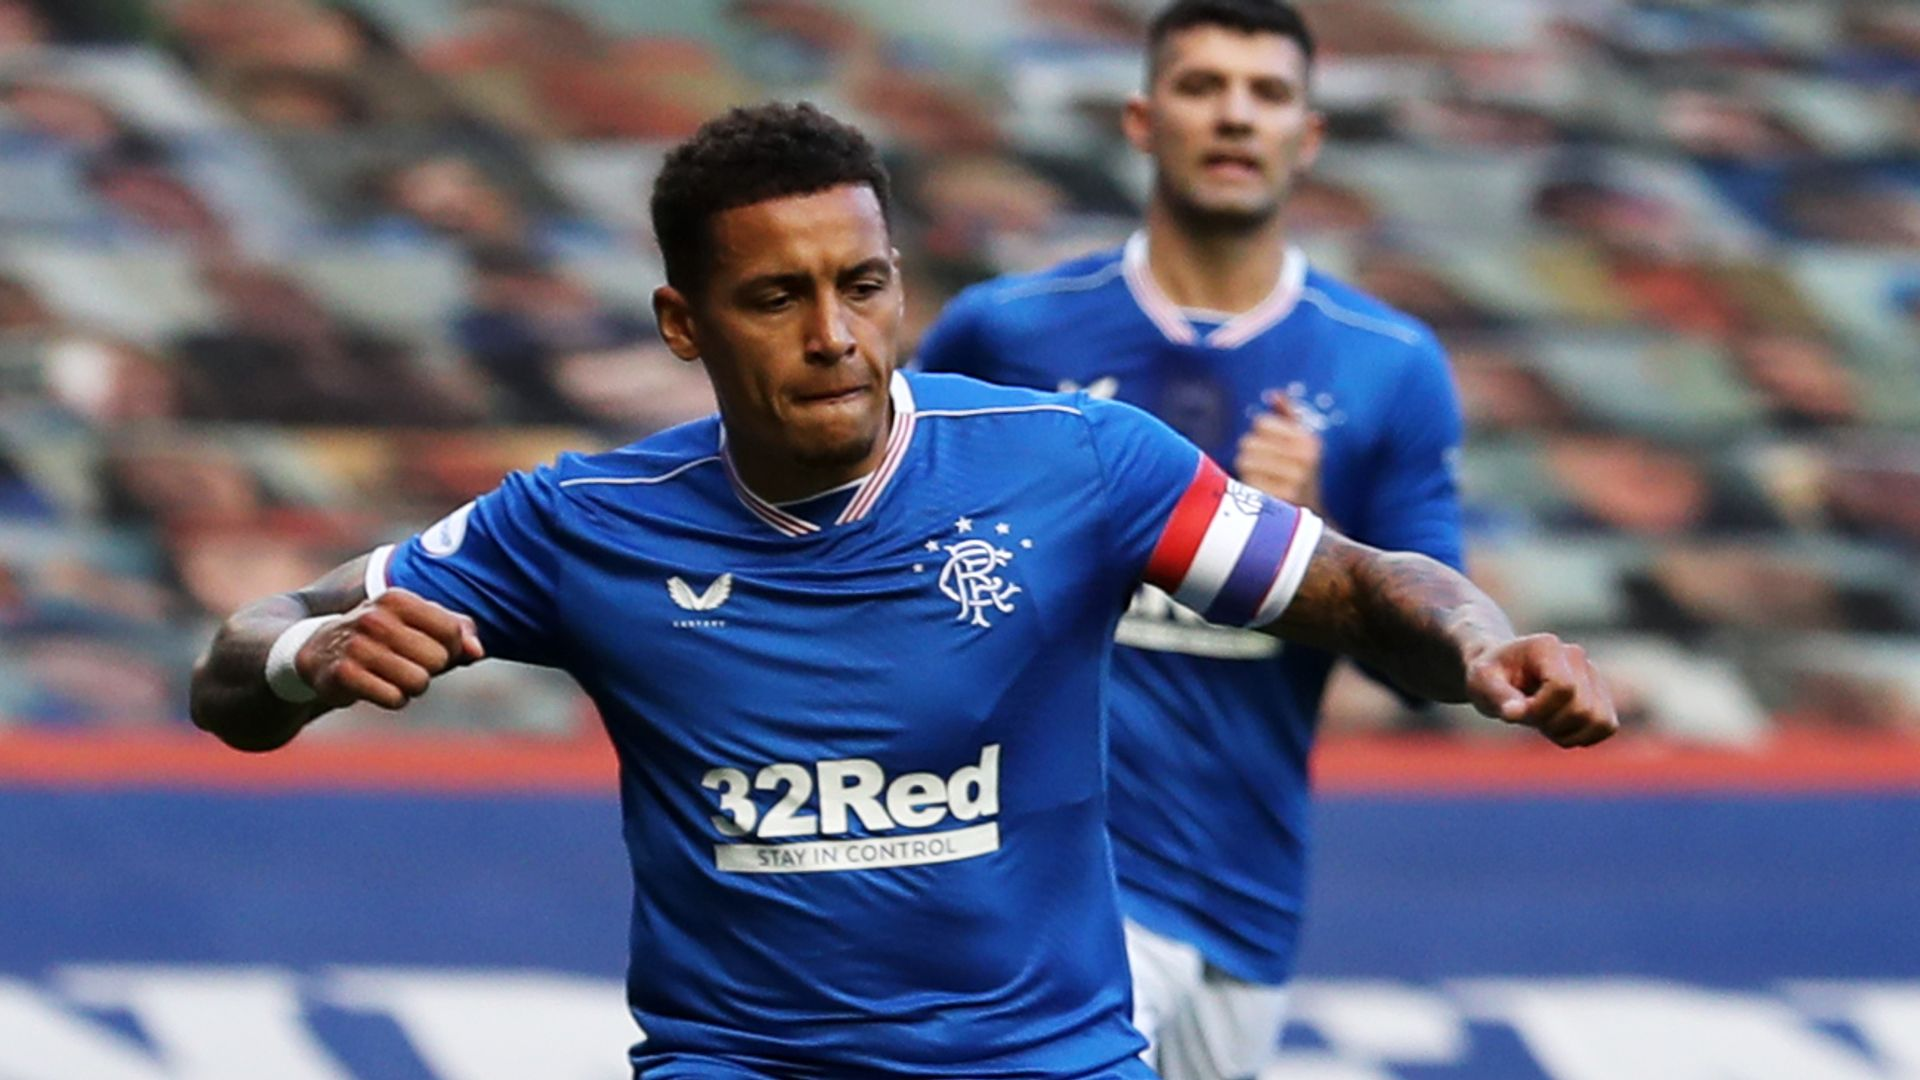 Rangers return to top with win over Ross County